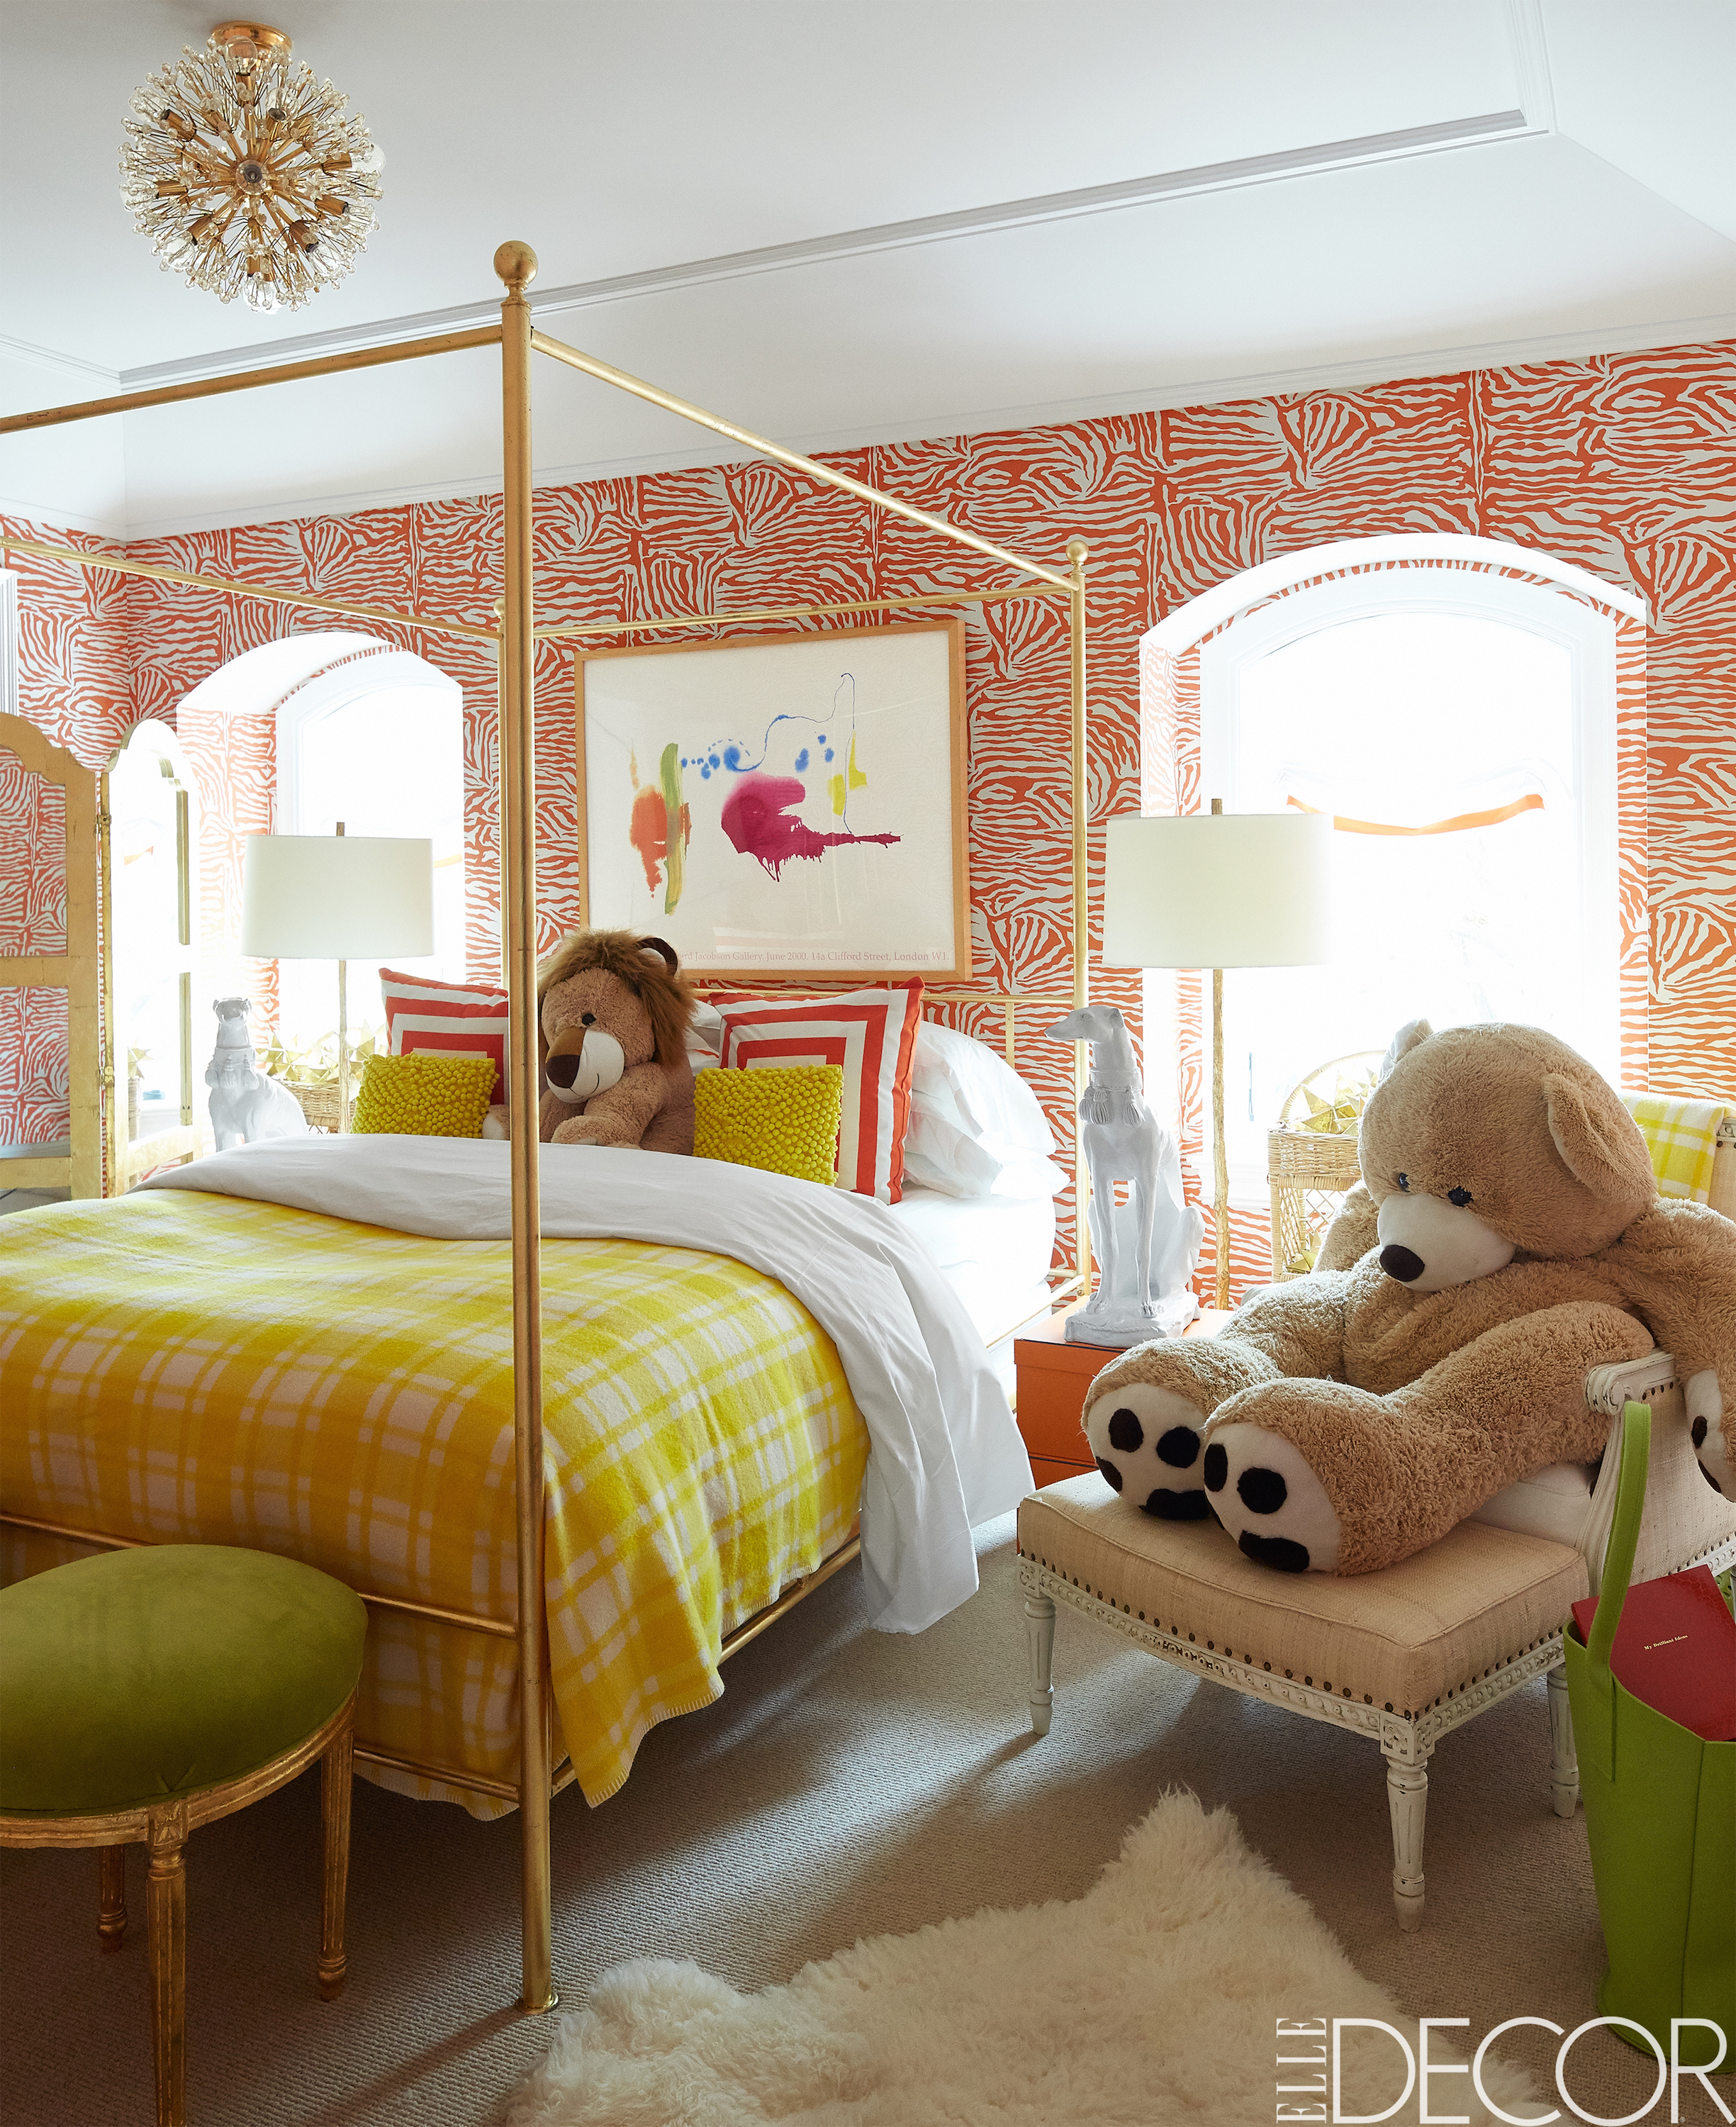 10 Girls Bedroom Decorating Ideas - Creative Girls Room ...